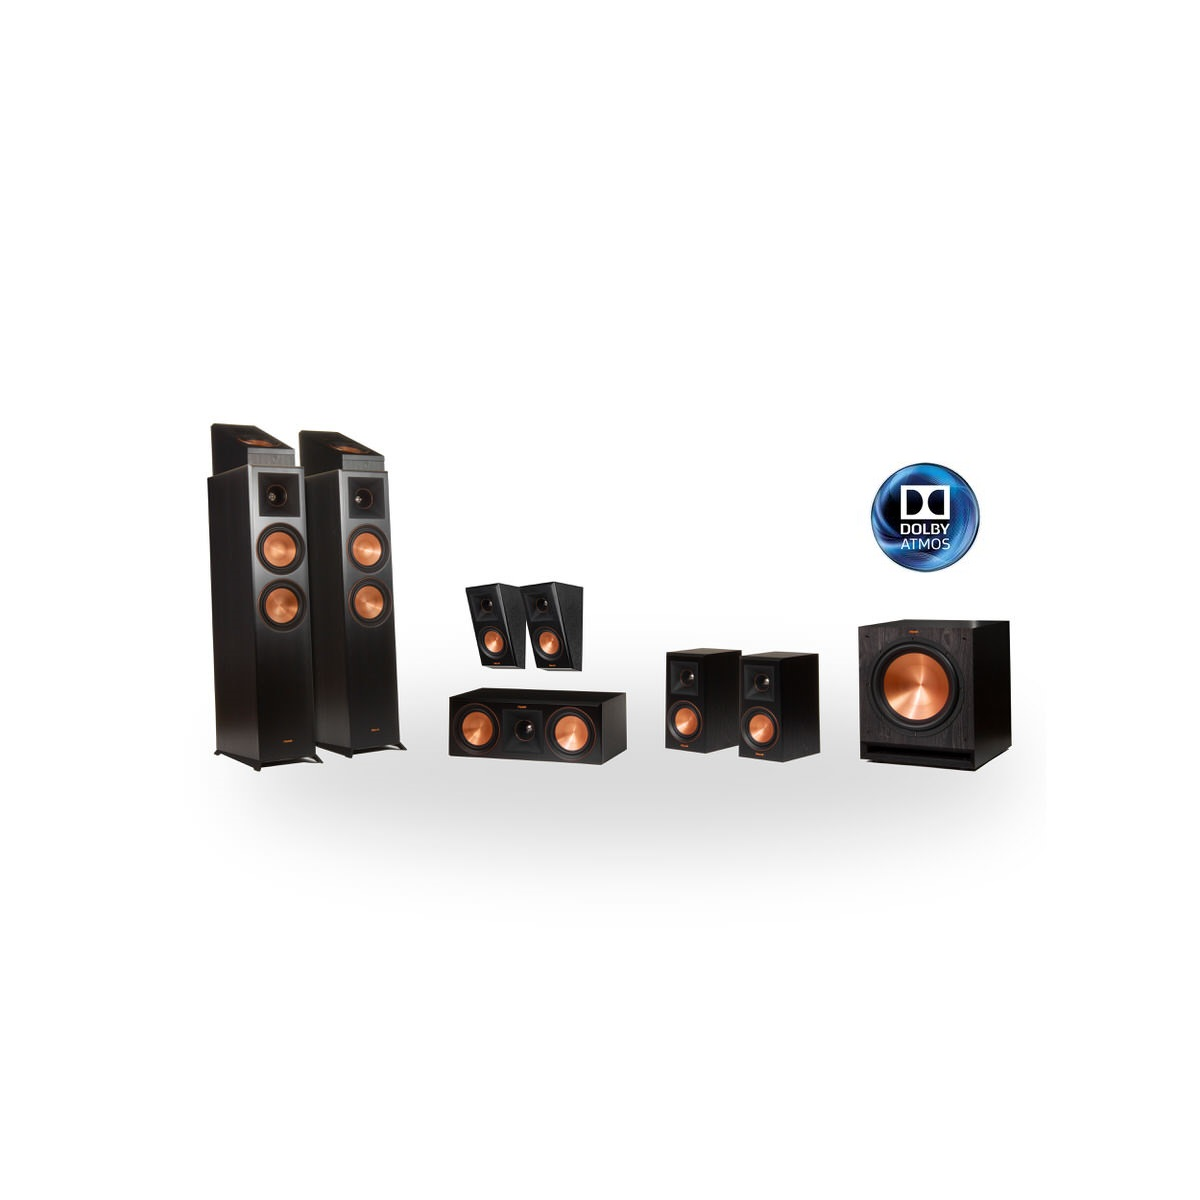 Klipsch Reference Premier RP-6000F 7.1.2 Dolby Atmos Home Theater System (Black)